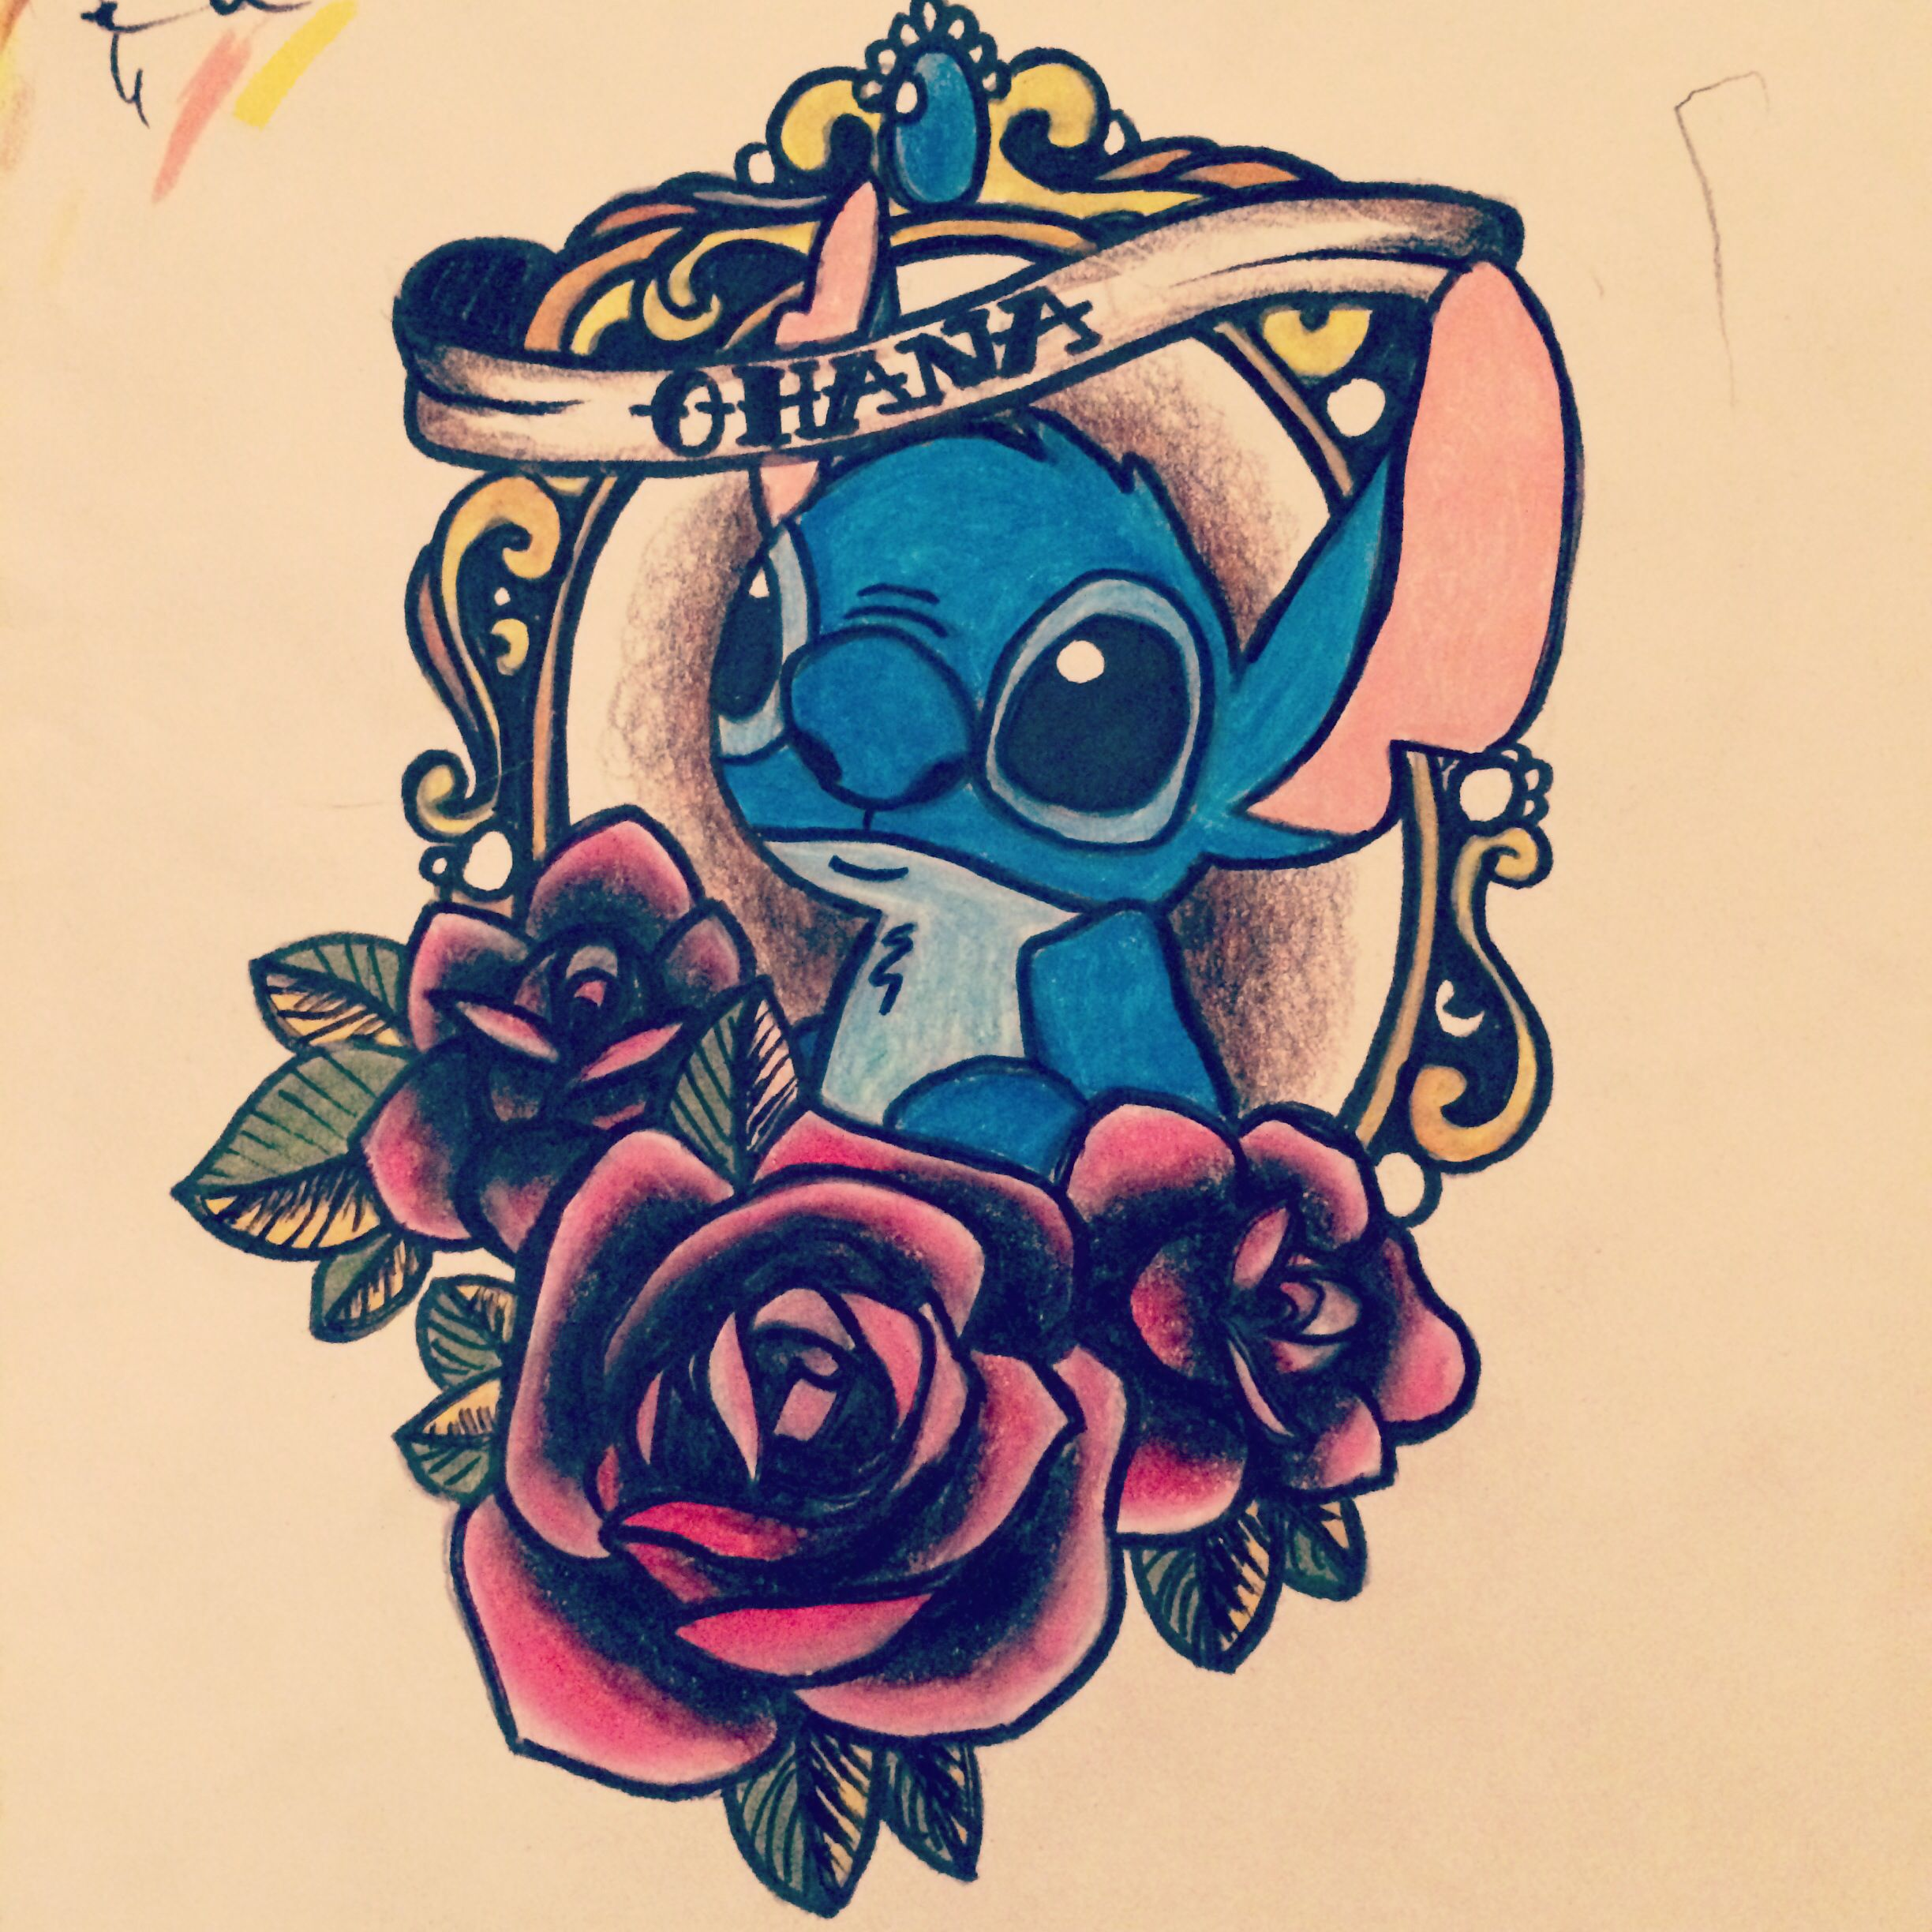 Drawn By Me Next On The Agenda Lilo And Stitch Tattoo Ohana